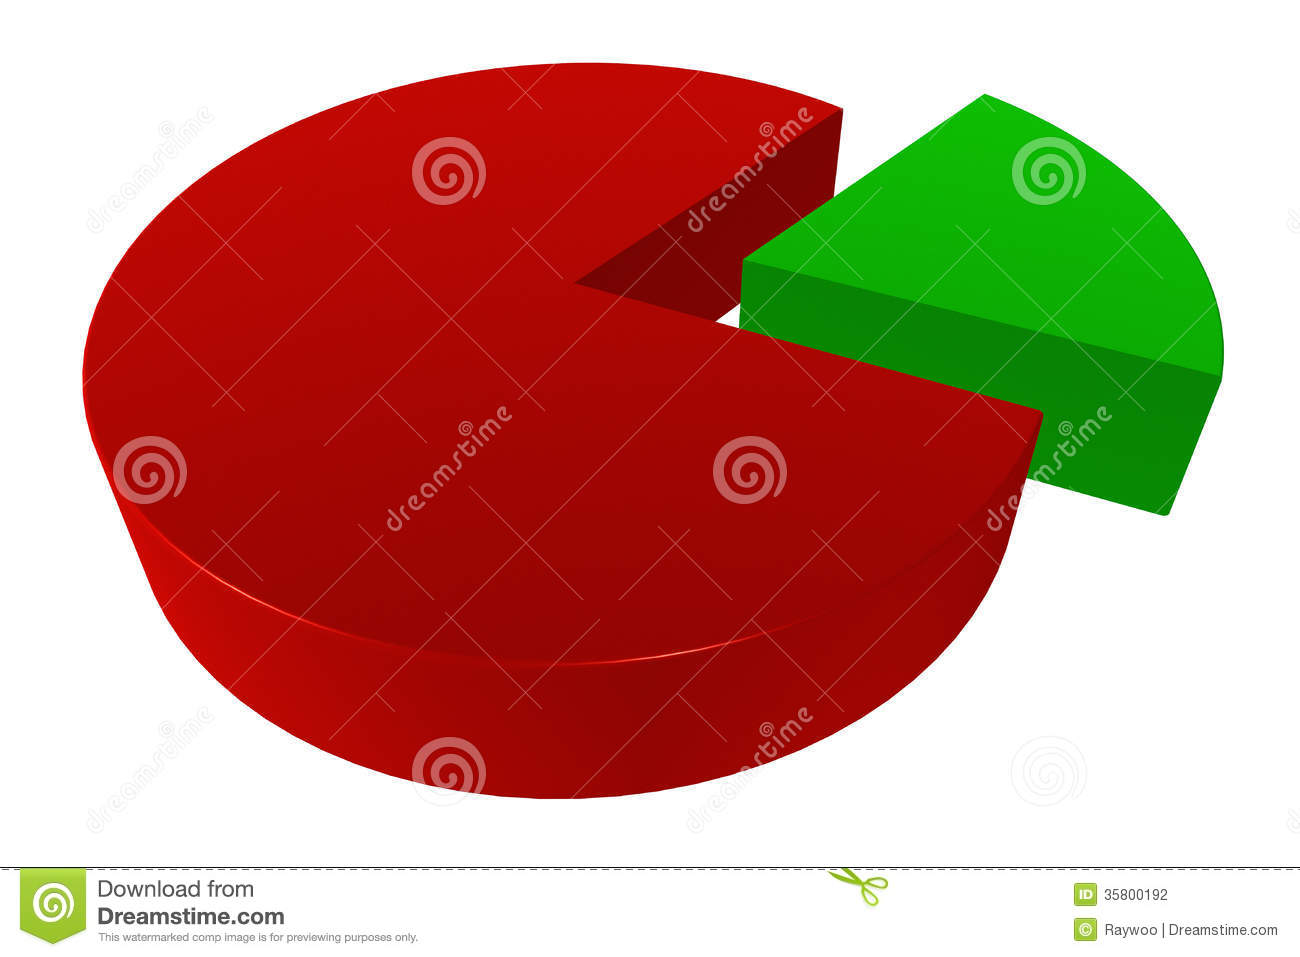 3d 8020 pie chart stock illustration illustration of 3d 8020 pie chart nvjuhfo Image collections